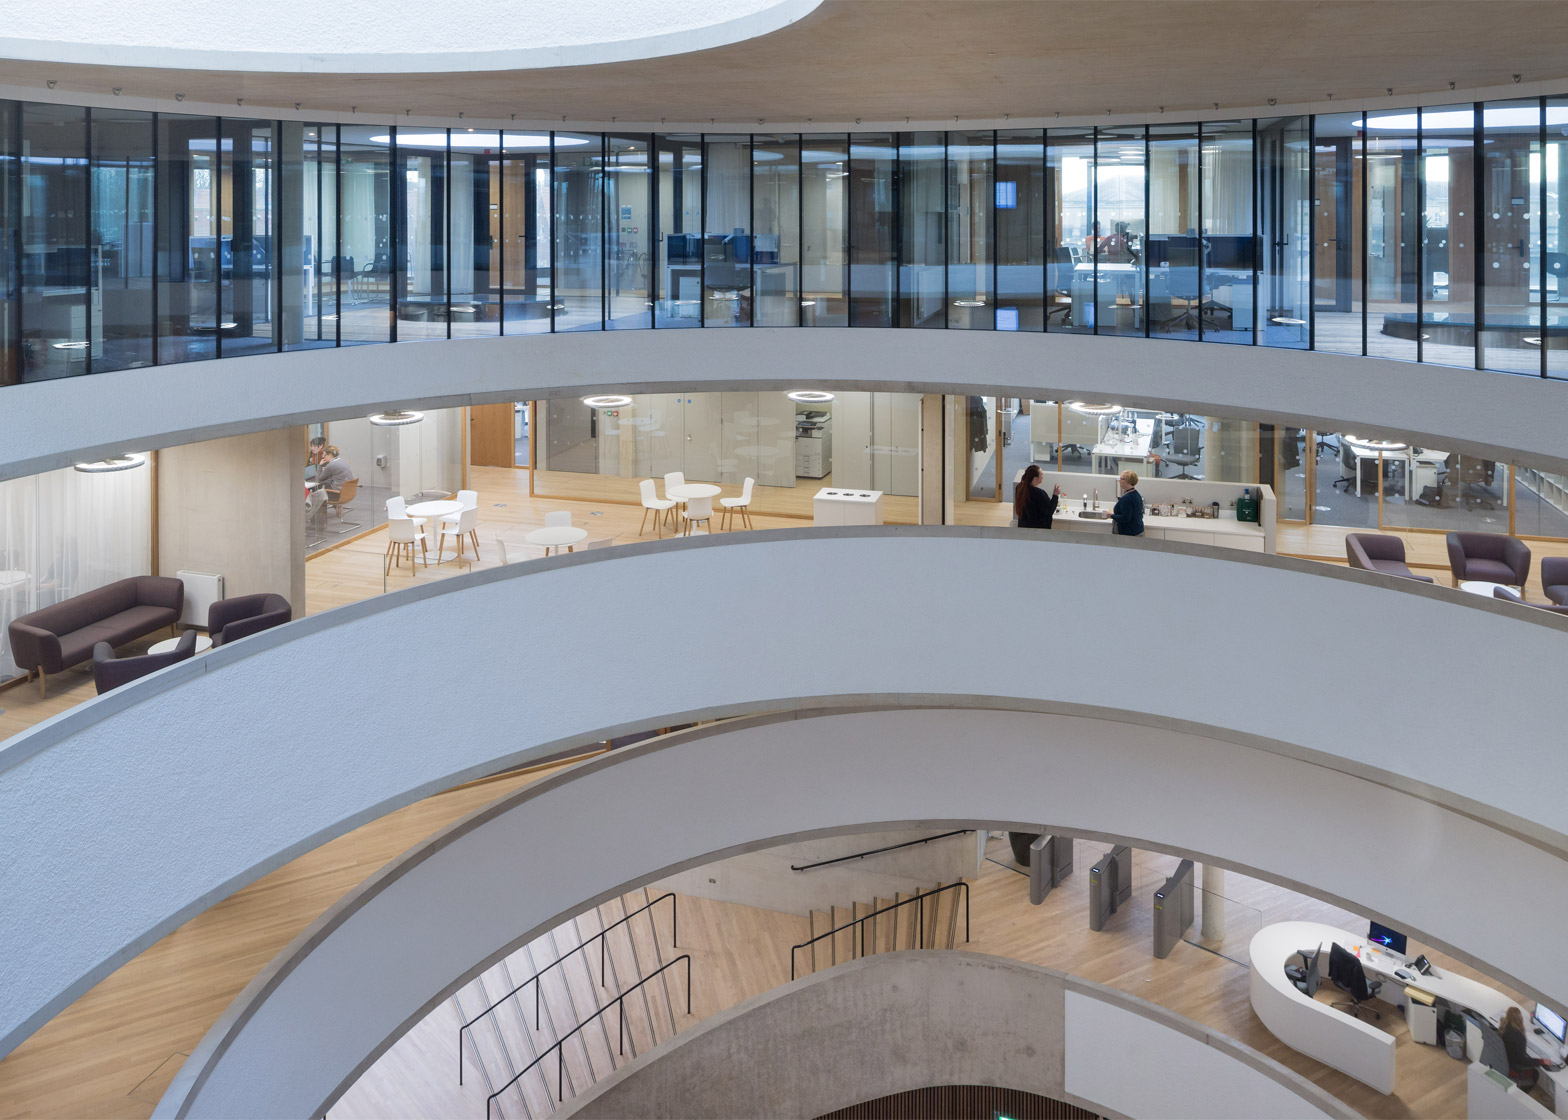 Blavatnik School of Government, University of Oxford by Herzog & de Meuron. Photograph by Iwan Baan